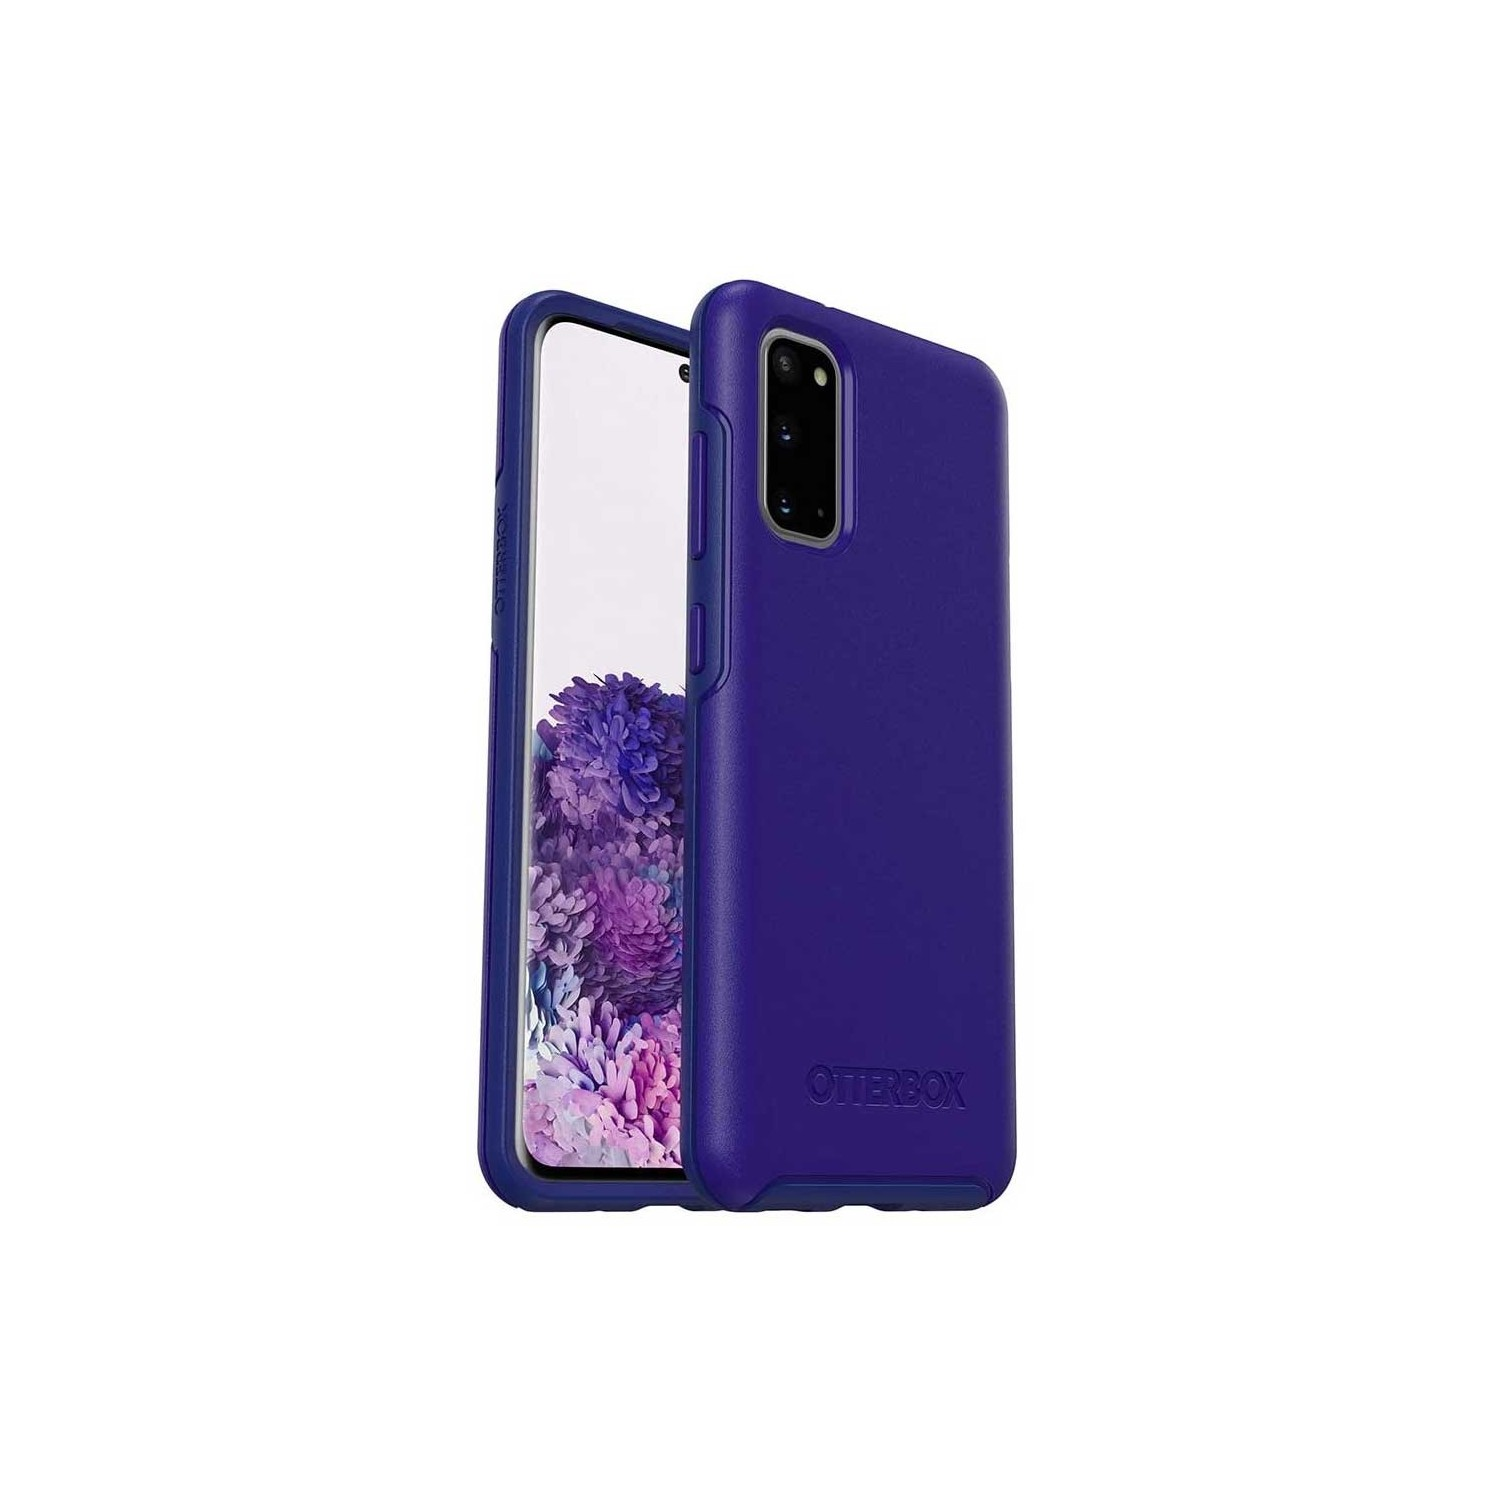 Case - OTTERBOX Symmetry for Samsung S20 - Sapphire